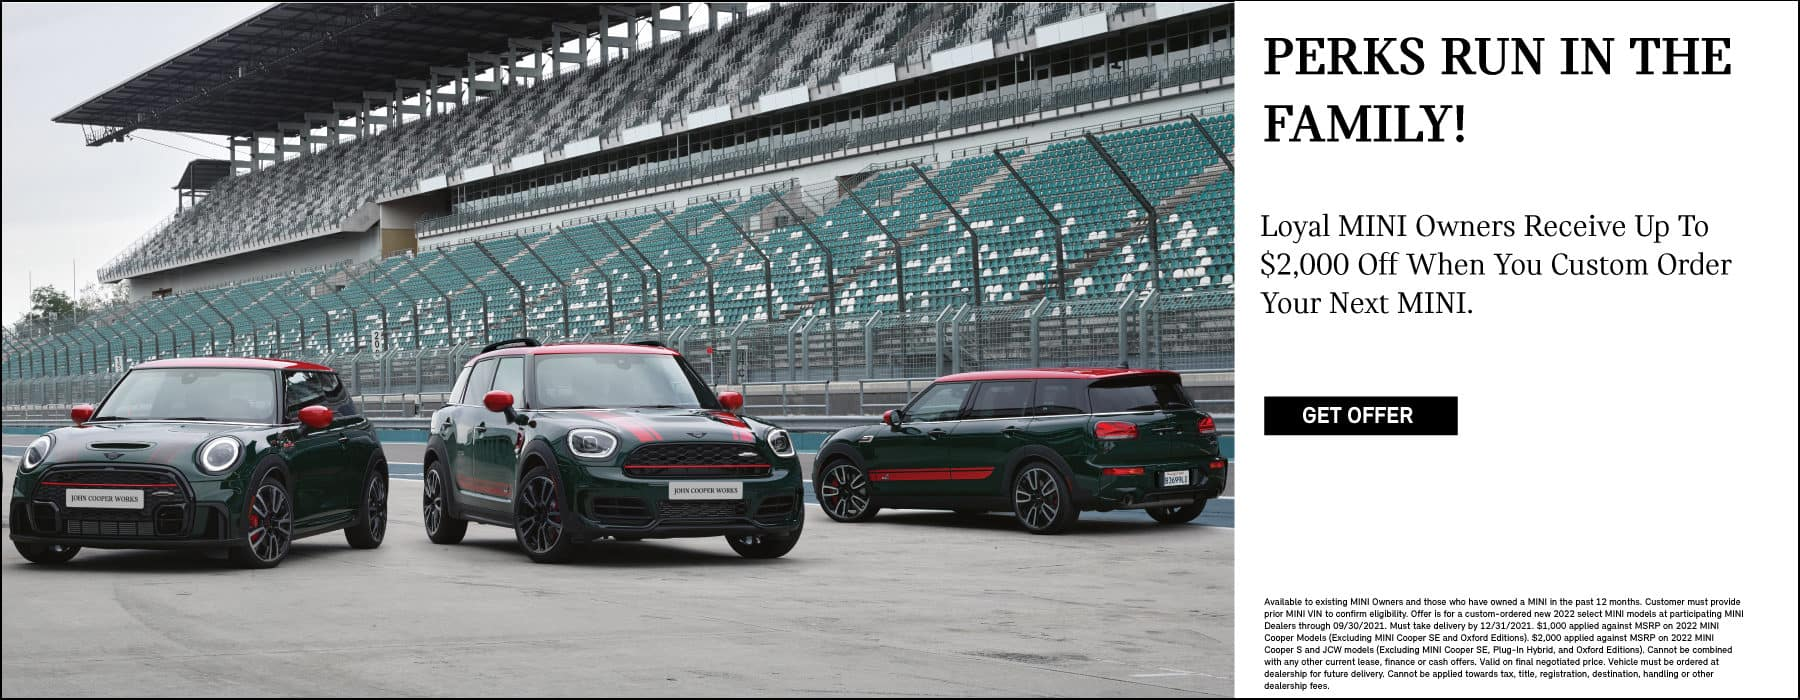 LOYAL MINI OWNERS RECEIVE UP TO $2,000 OFF WHEN YOU CUSTOM ORDER YOUR NEXT MINI. CLICK TO GET OFFER